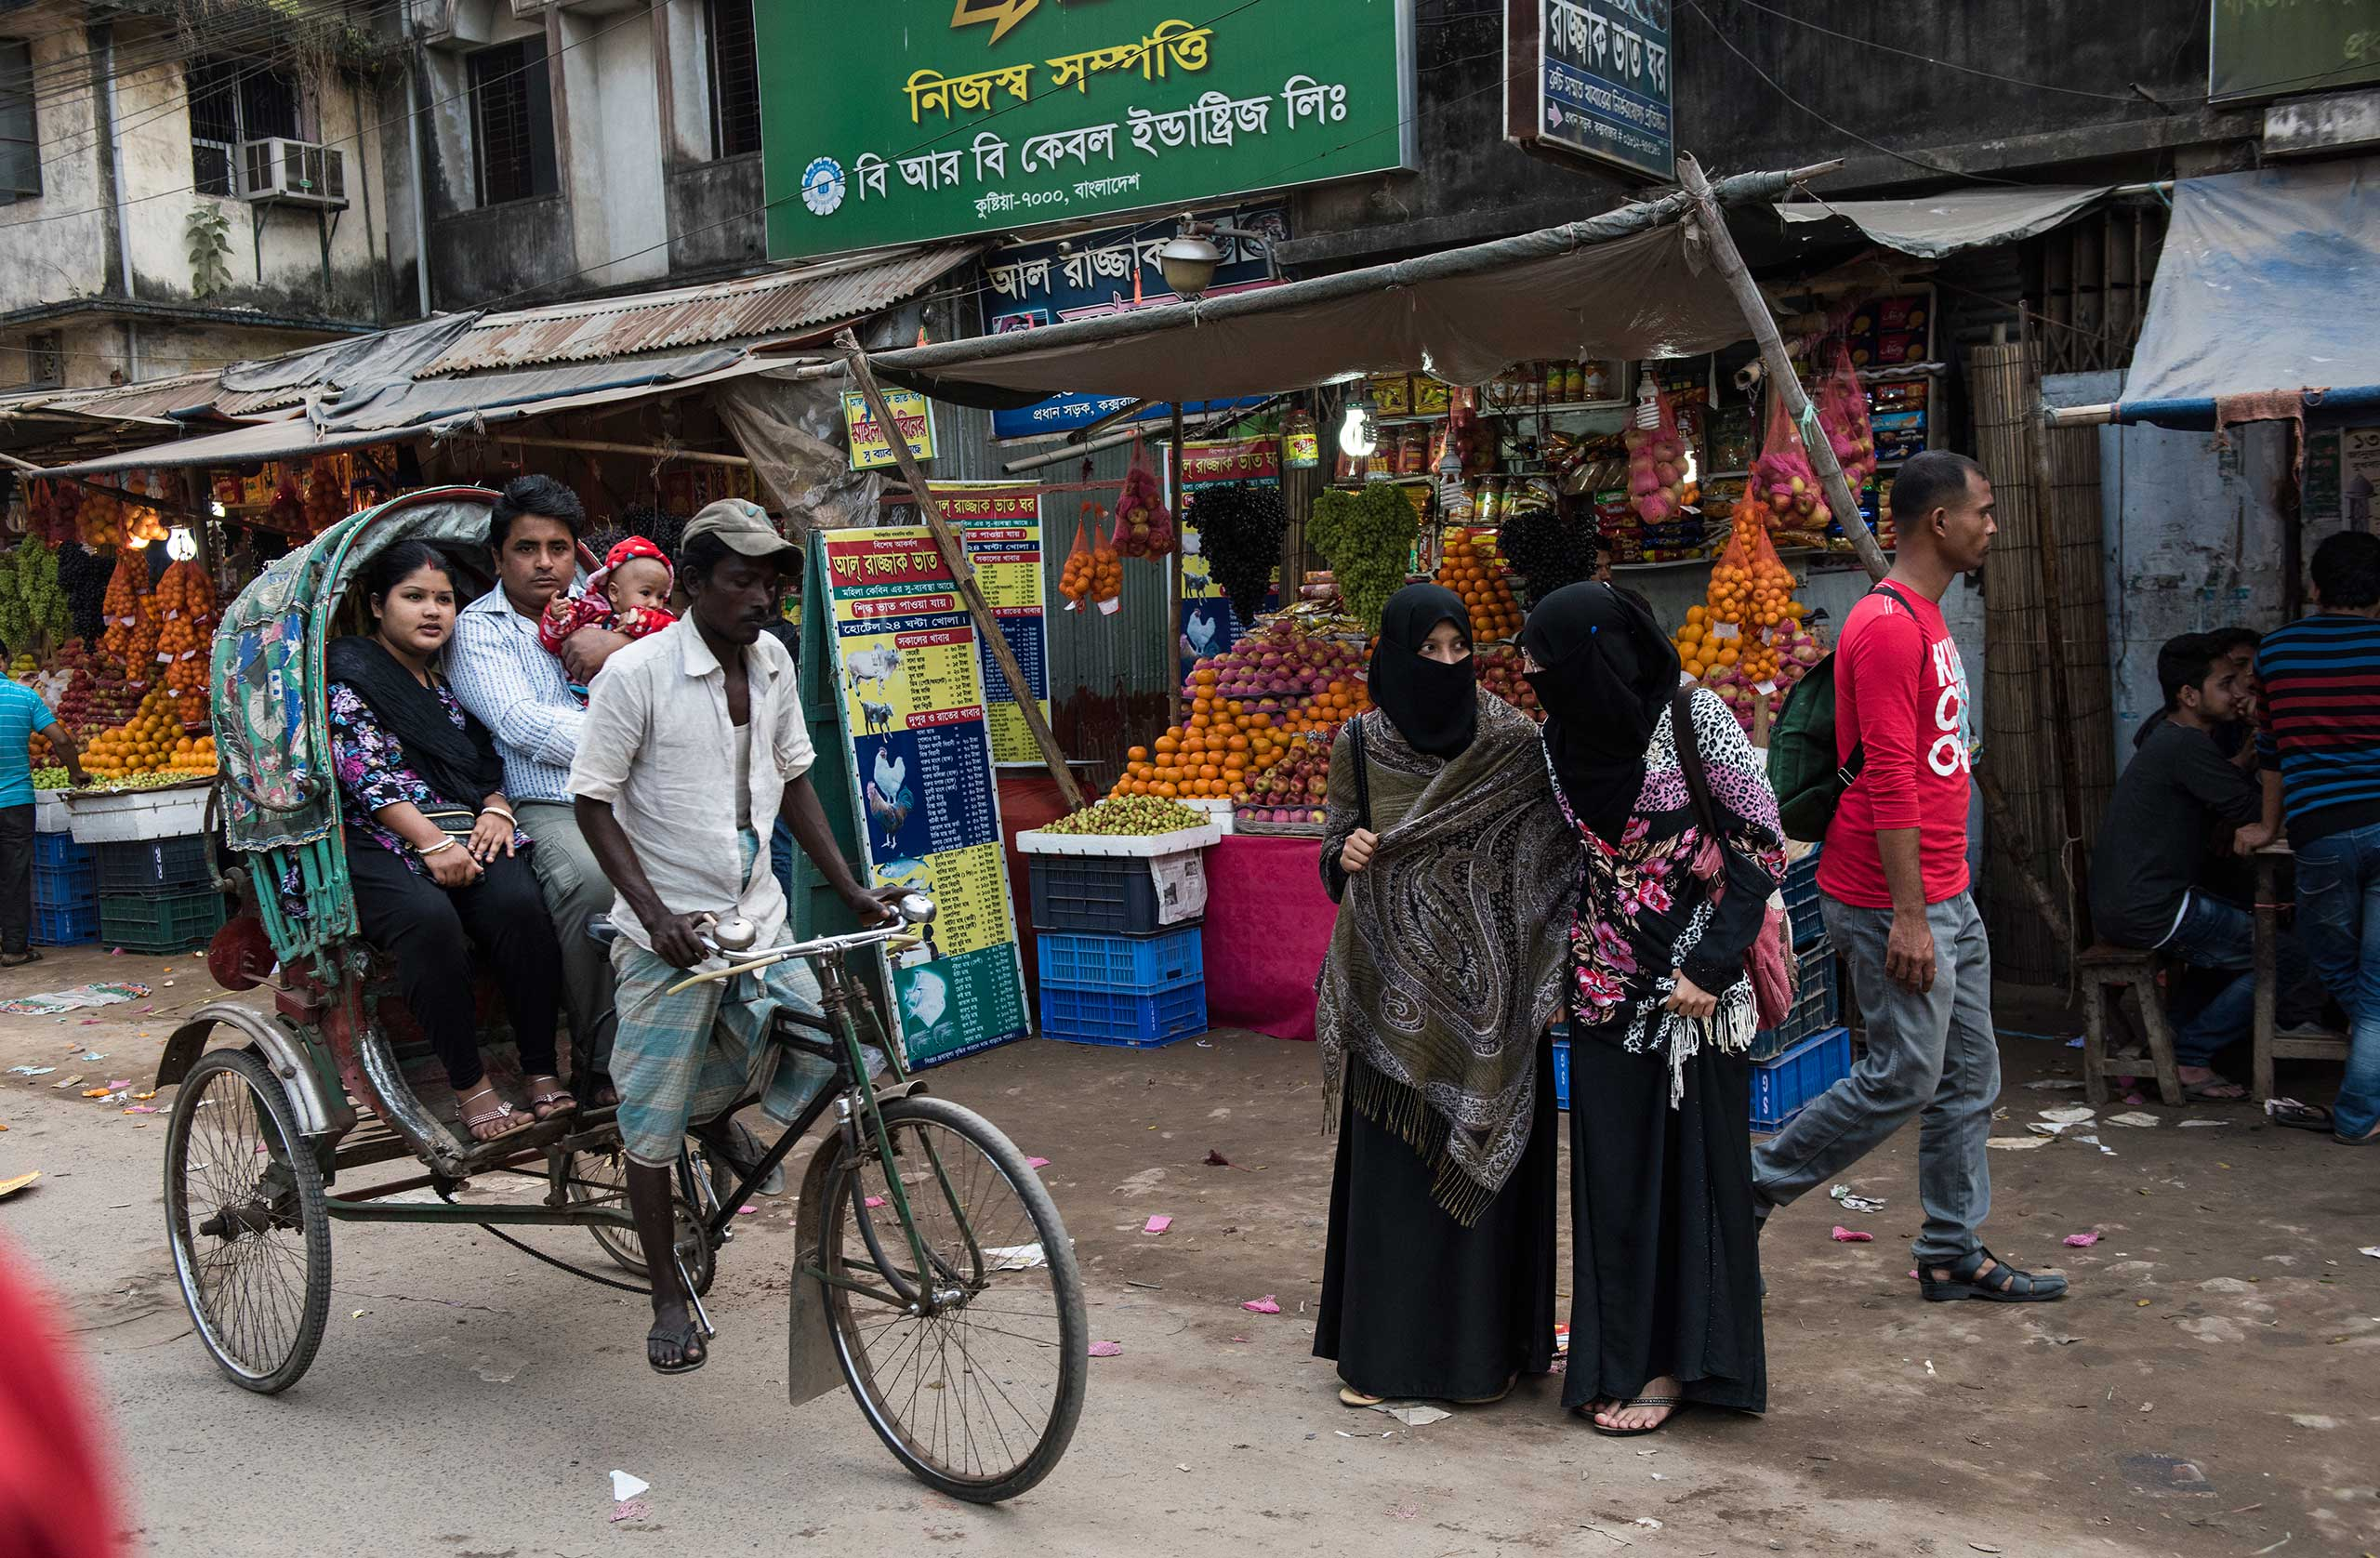 Rohingya men transport Bangldeshis through Cox's bazaar on cycle rickshaws. It is one of the few professions, along with fishing, working in ice-factories, and menial jobs in manual labor, that Rohingyas typically are able to work in Bangladesh, Jan. 16, 2016.